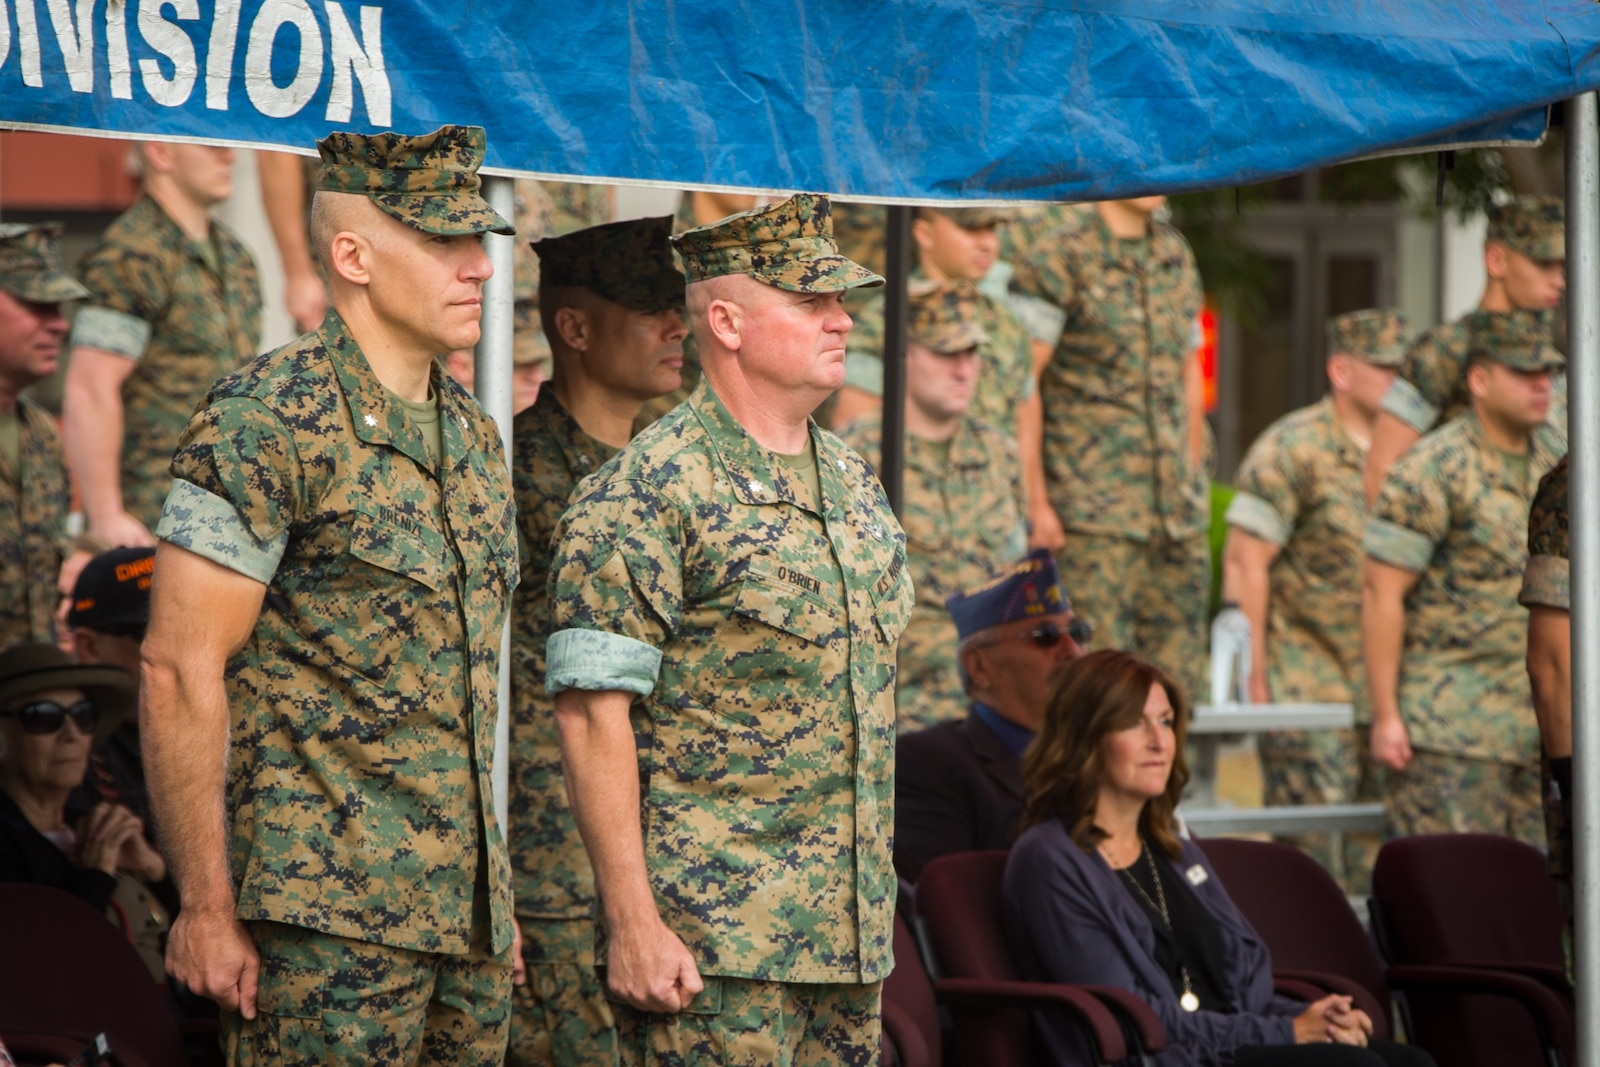 U.S. Marine Corps Lt. Col. Keith C. Brenize, left, the oncoming commanding general of 3rd Assault Amphibian Battalion (AABN), 1st Marine Division and Lt. Col. William E. O'Brien, the outgoing commanding general of 3rd AABN, 1st Marine Division, stand for the playing of Waltzing Matilda during a change of command ceremony at Marine Corps Base Camp Pendleton, Calif., June 1, 2018.The ceremony was held in honor of O'Brien, who relinquished his post as 3rd AABN commanding general to Brenize.